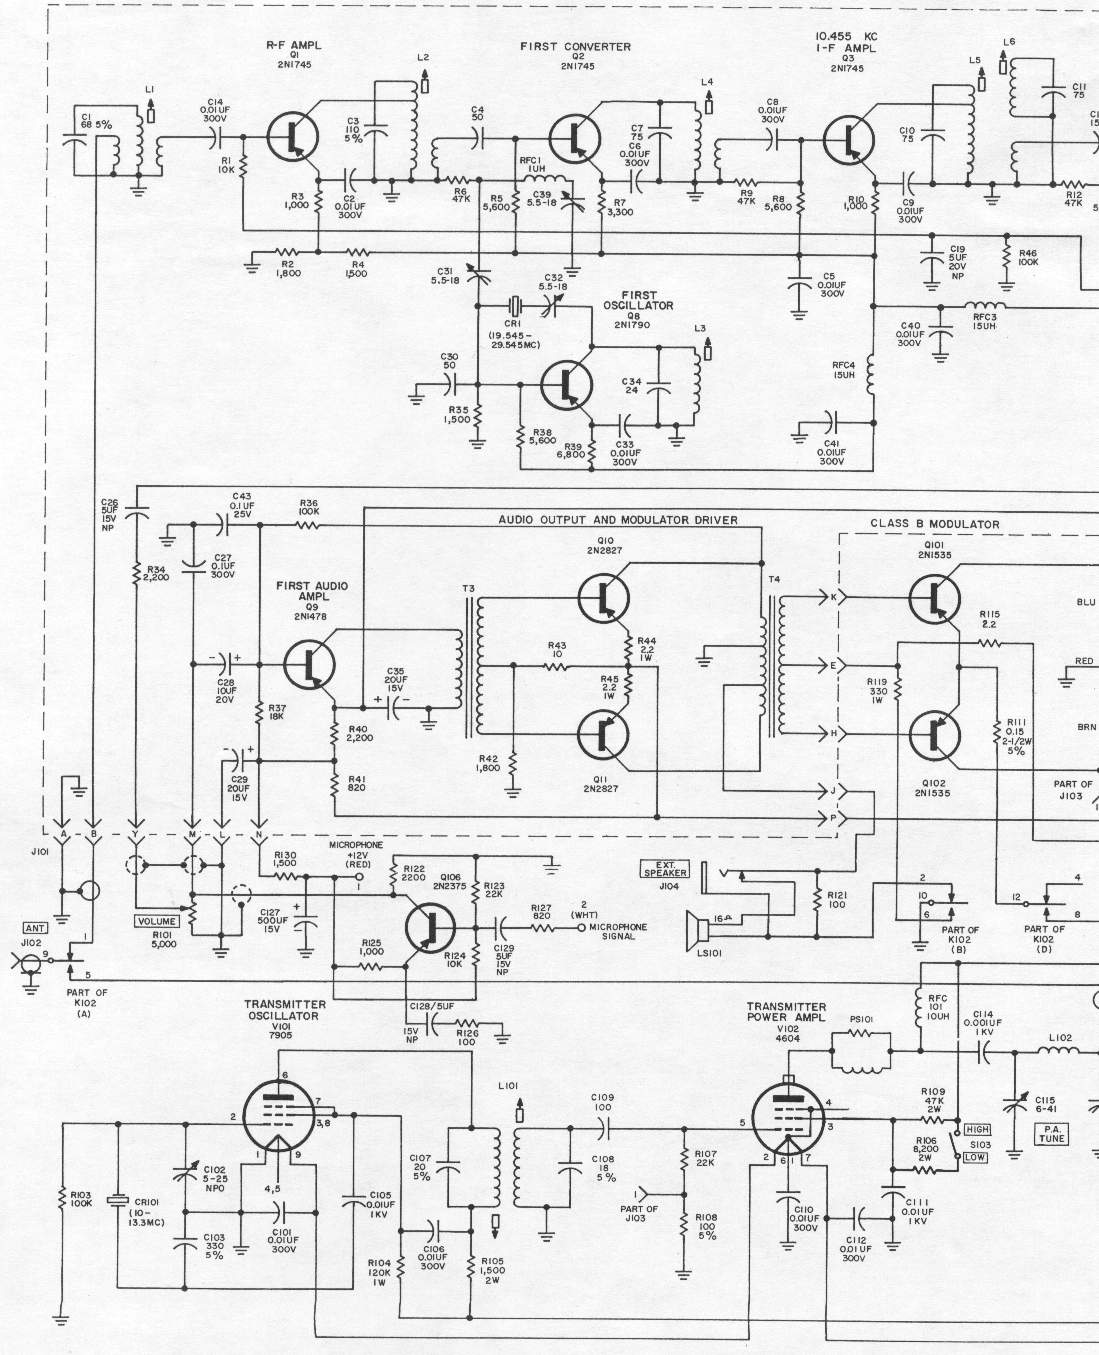 Bazooka El Series Wiring Diagram Power Dvd Player Download Softonic Sub Harness Tube Further Alpine Car Audio Subwoofers Moreover Panasonic Wire In